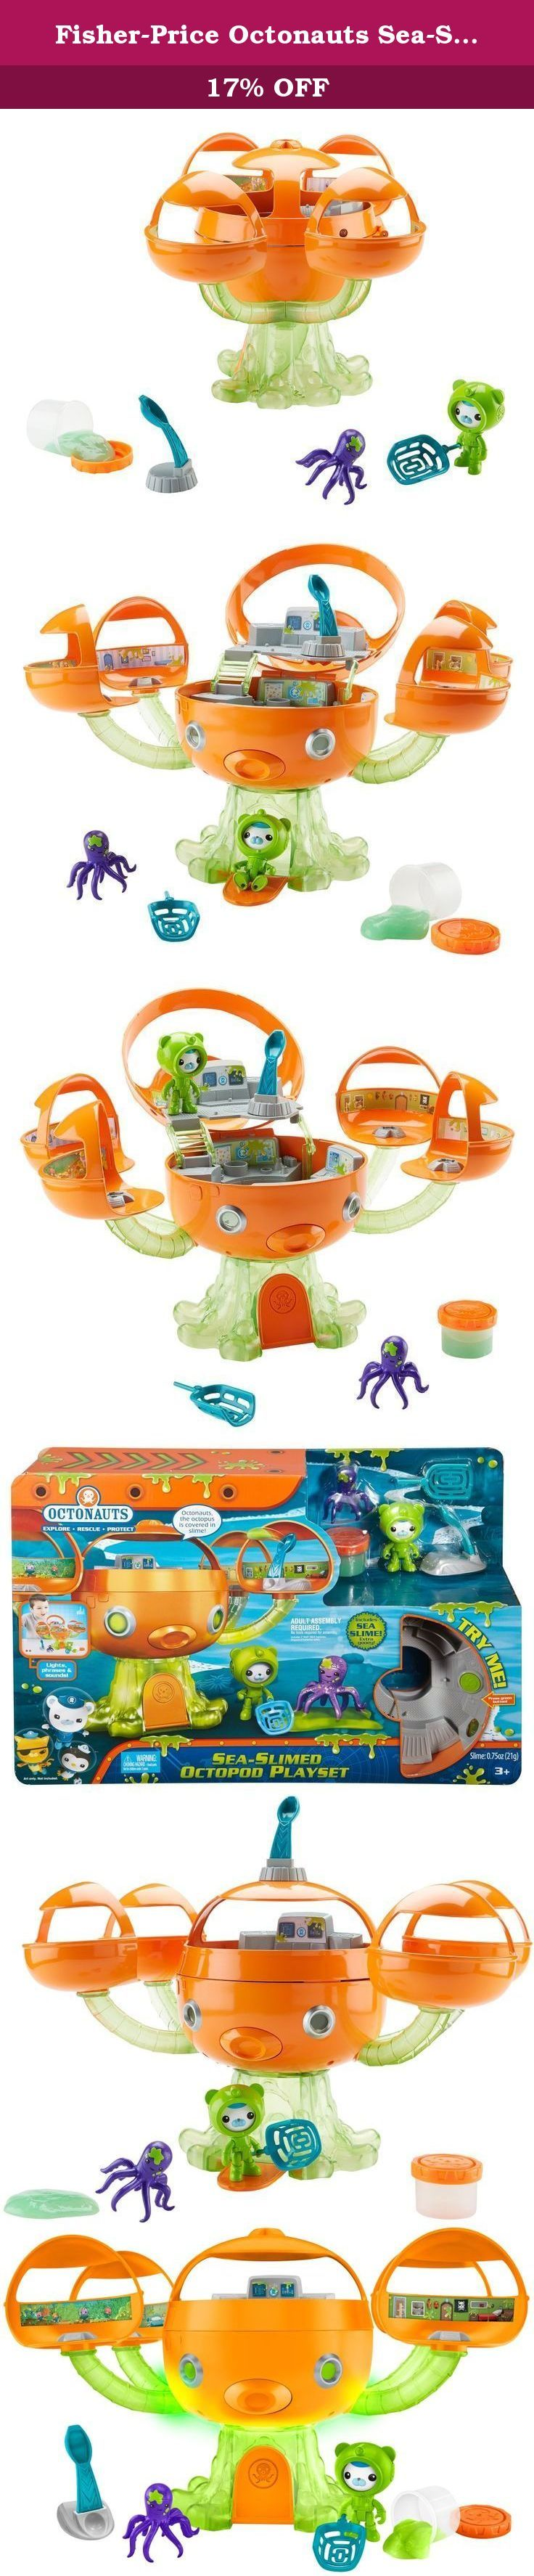 fisher price octonauts sea slimed octopod playset its slime time the octonauts